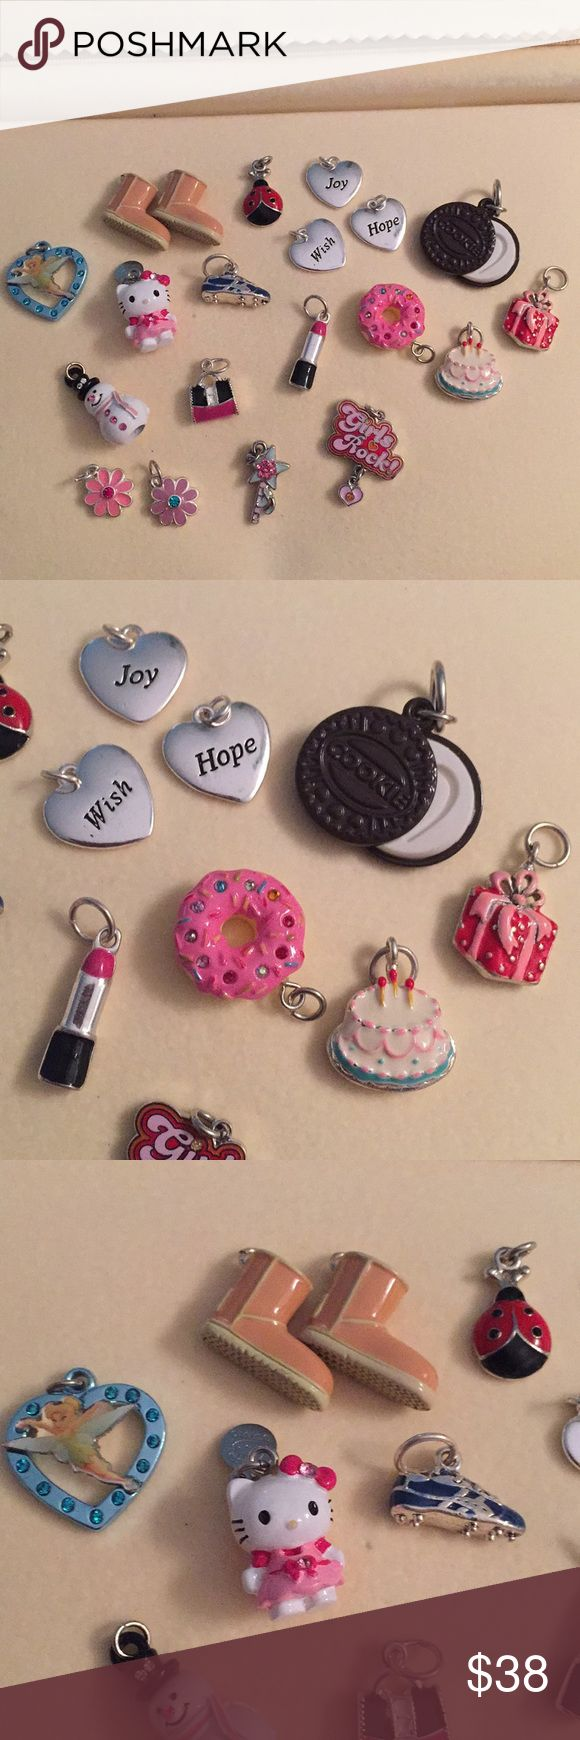 Group of 20 enamel & Silver color, Many unique Group of 20 charms- including uggs, Oreo cookie, flowers, ladybug, snowman, Hello Kitty, lipstick, purse, running shoe, donut, birthday cake, present, etc. Enamel with silver alloy. All new without tags, price for all. unknown Jewelry